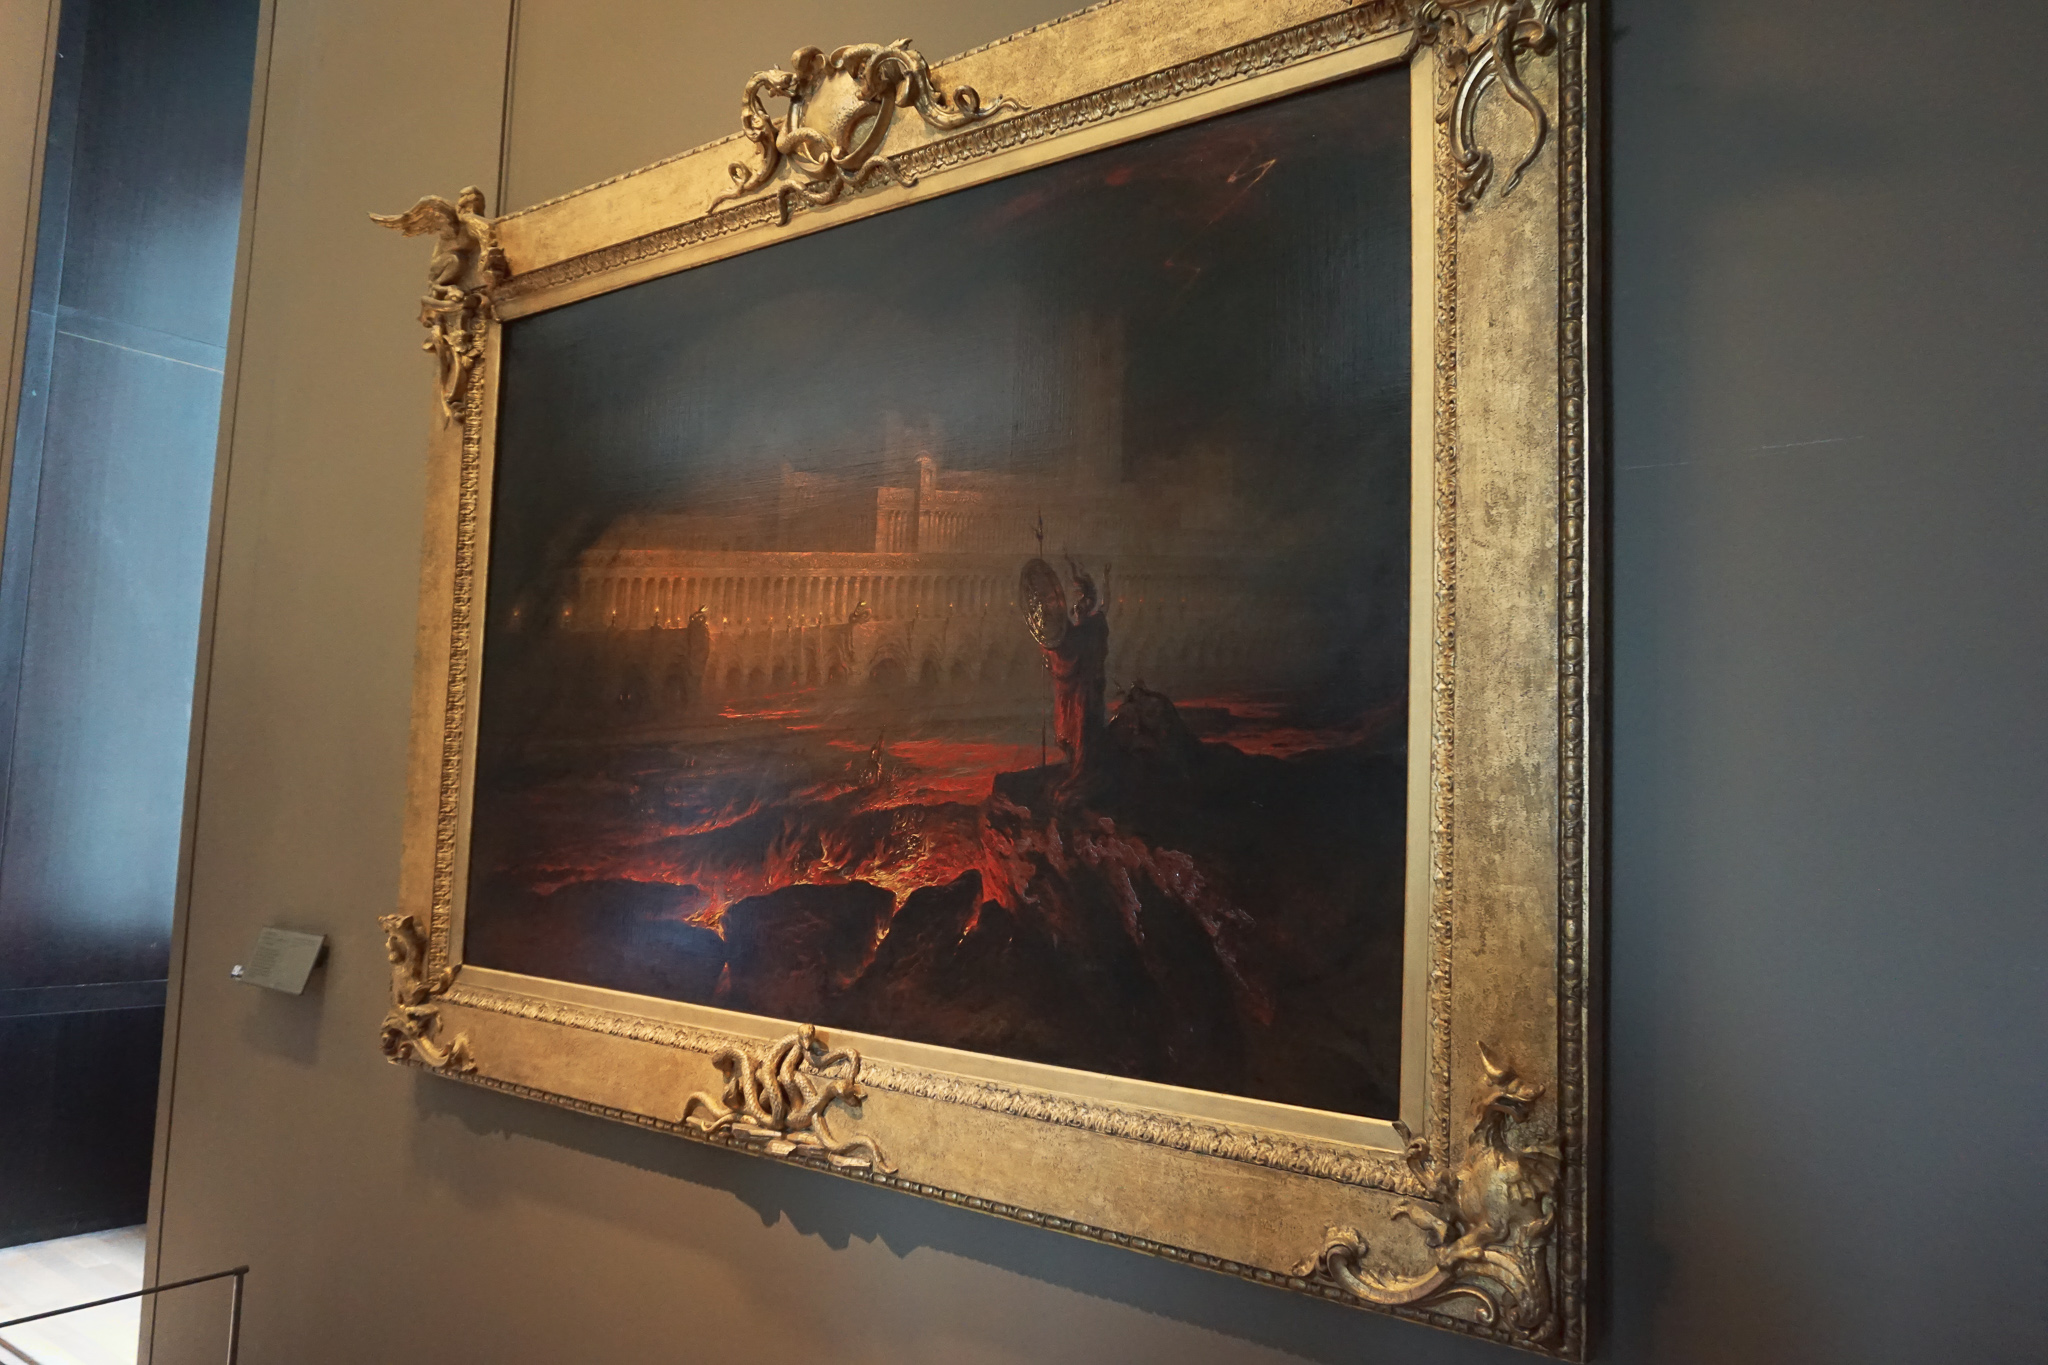 The extremely striking Pandæmonium by John Martin, which depicts a scene from John Milton's Paradise Lost. The detailing is incredible!